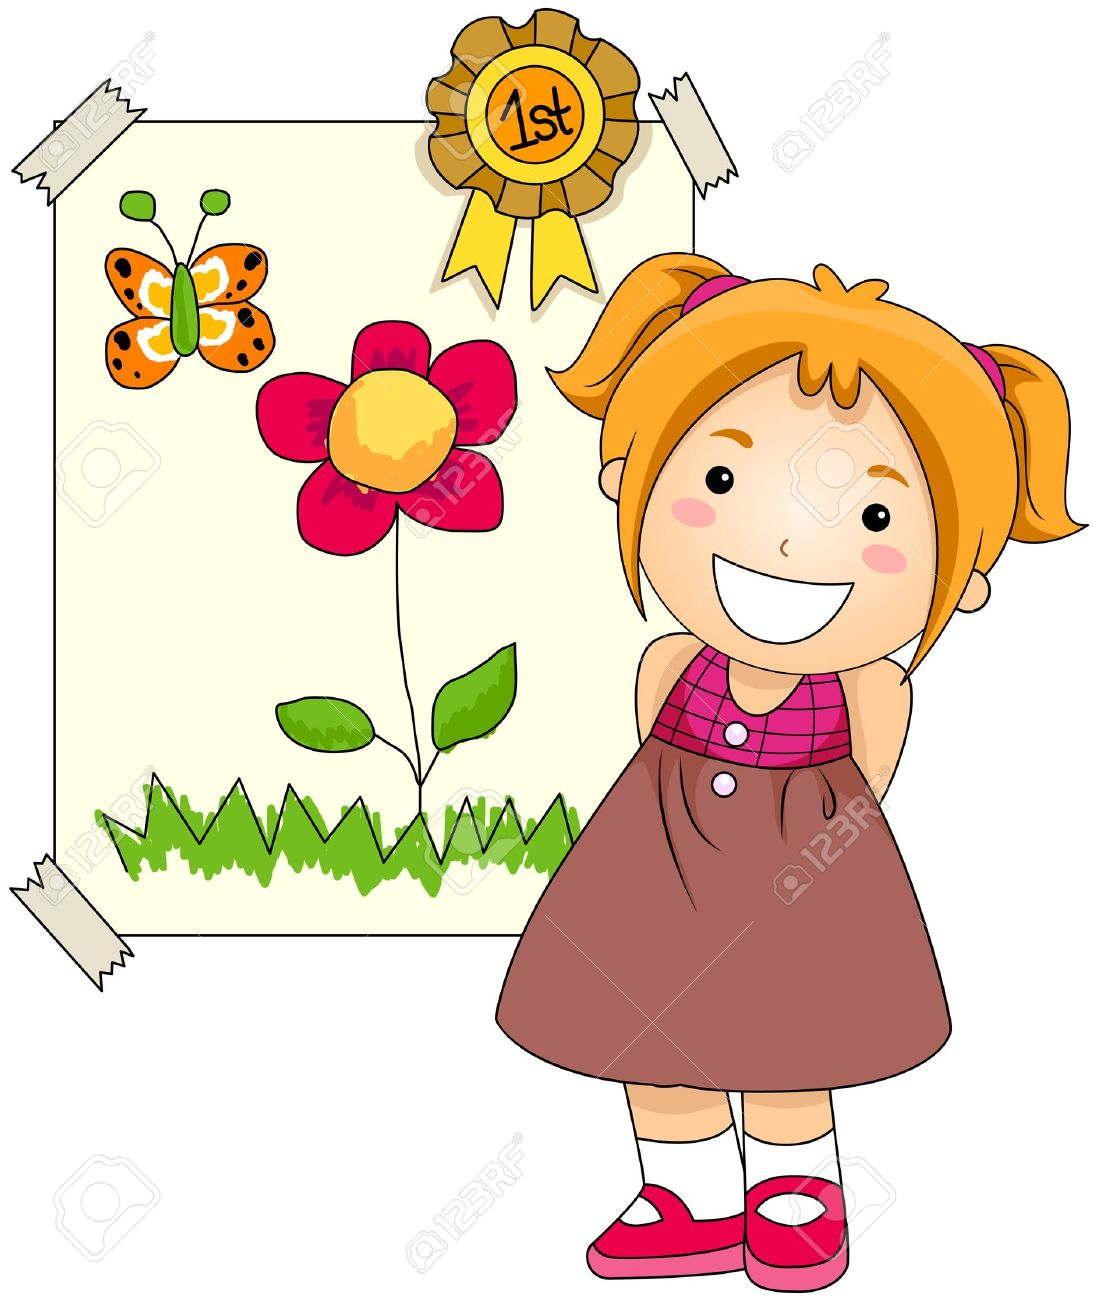 Girl With Award On Her Artwork Stock Photo, Picture And Royalty.